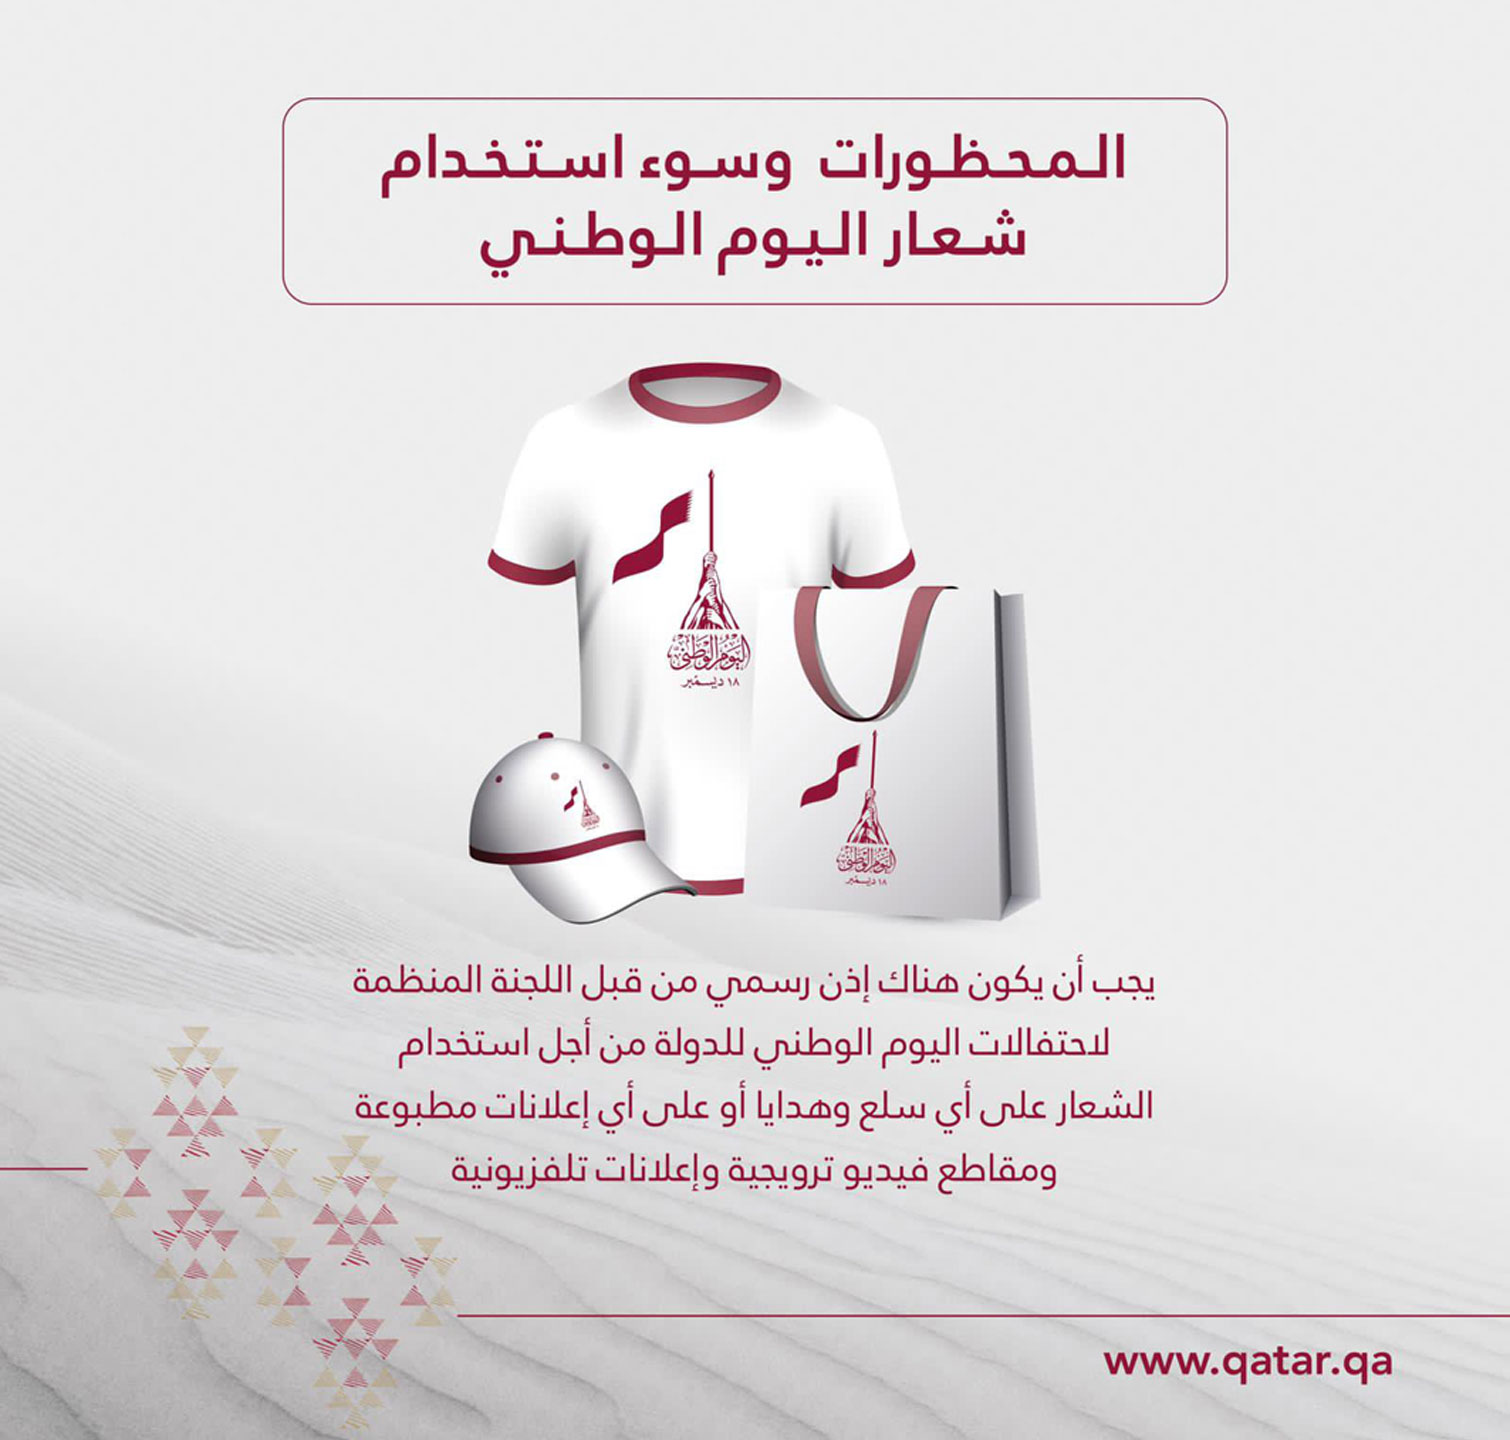 Obtaining official permission is a must for using the National Day logo